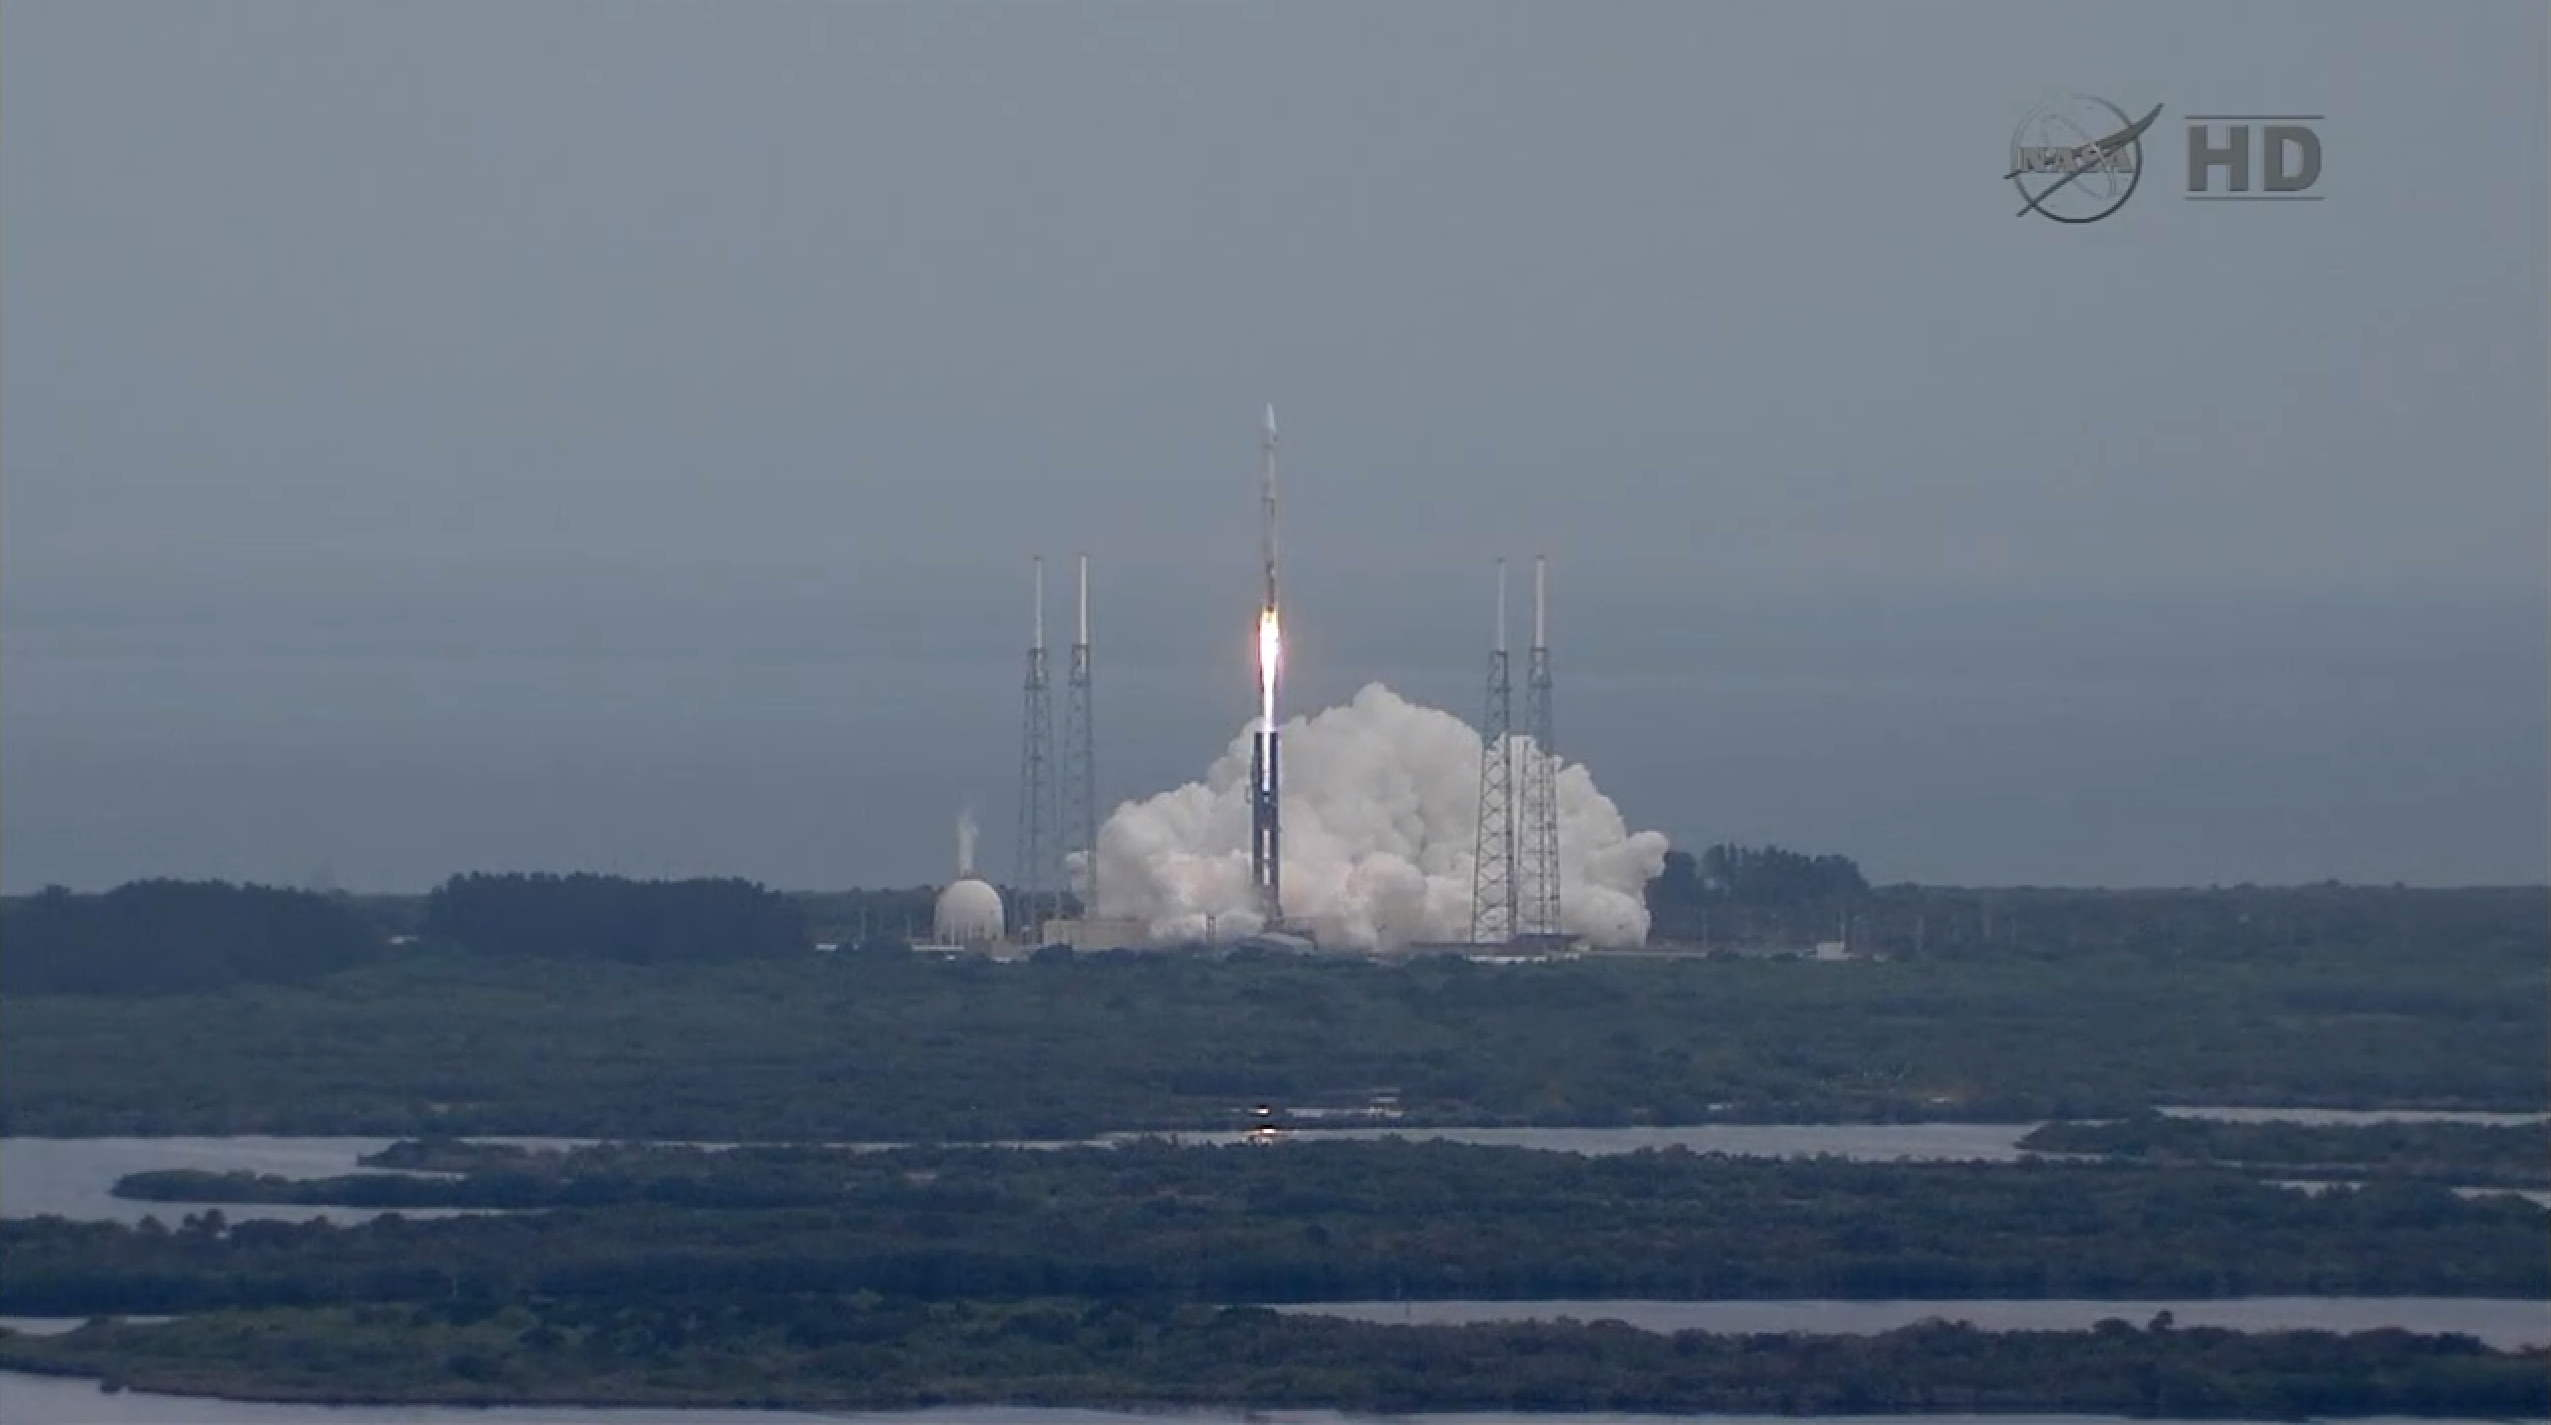 MAVEN Spacecraft Launches on Nov. 18, 2013 #2